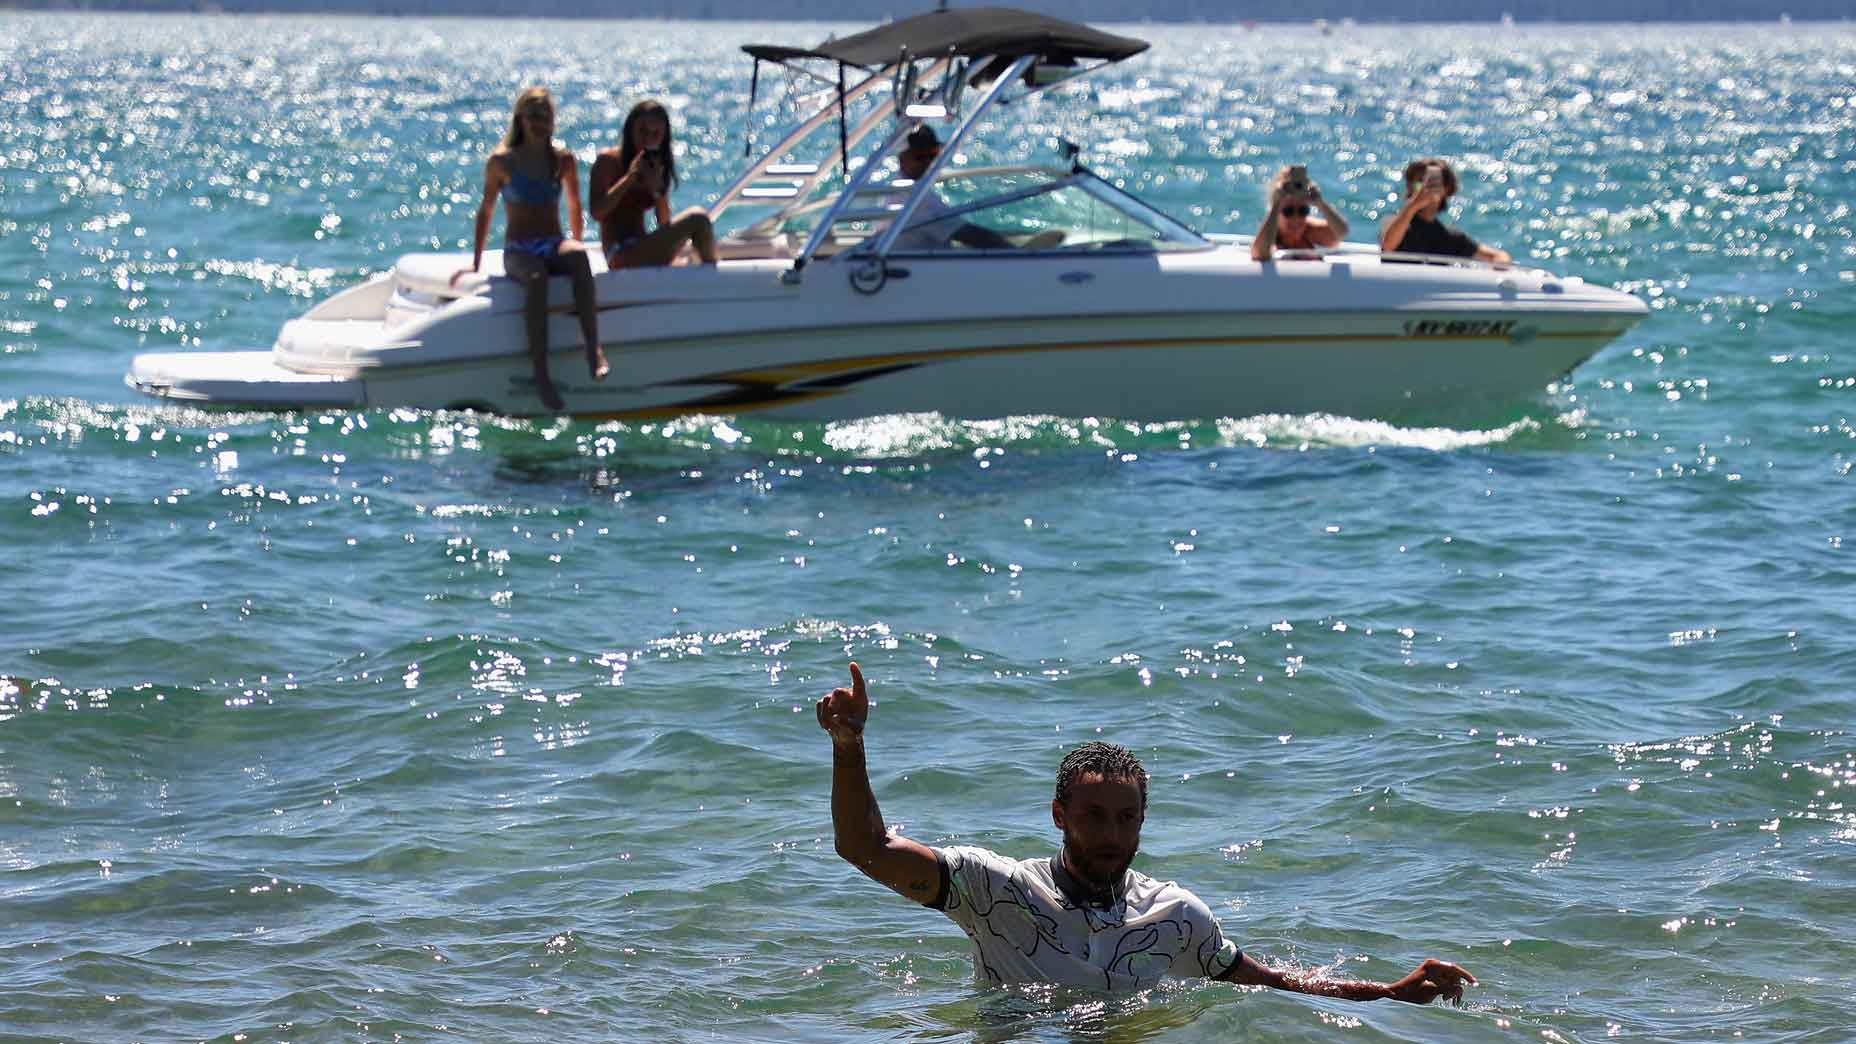 Steph Curry in Lake Tahoe